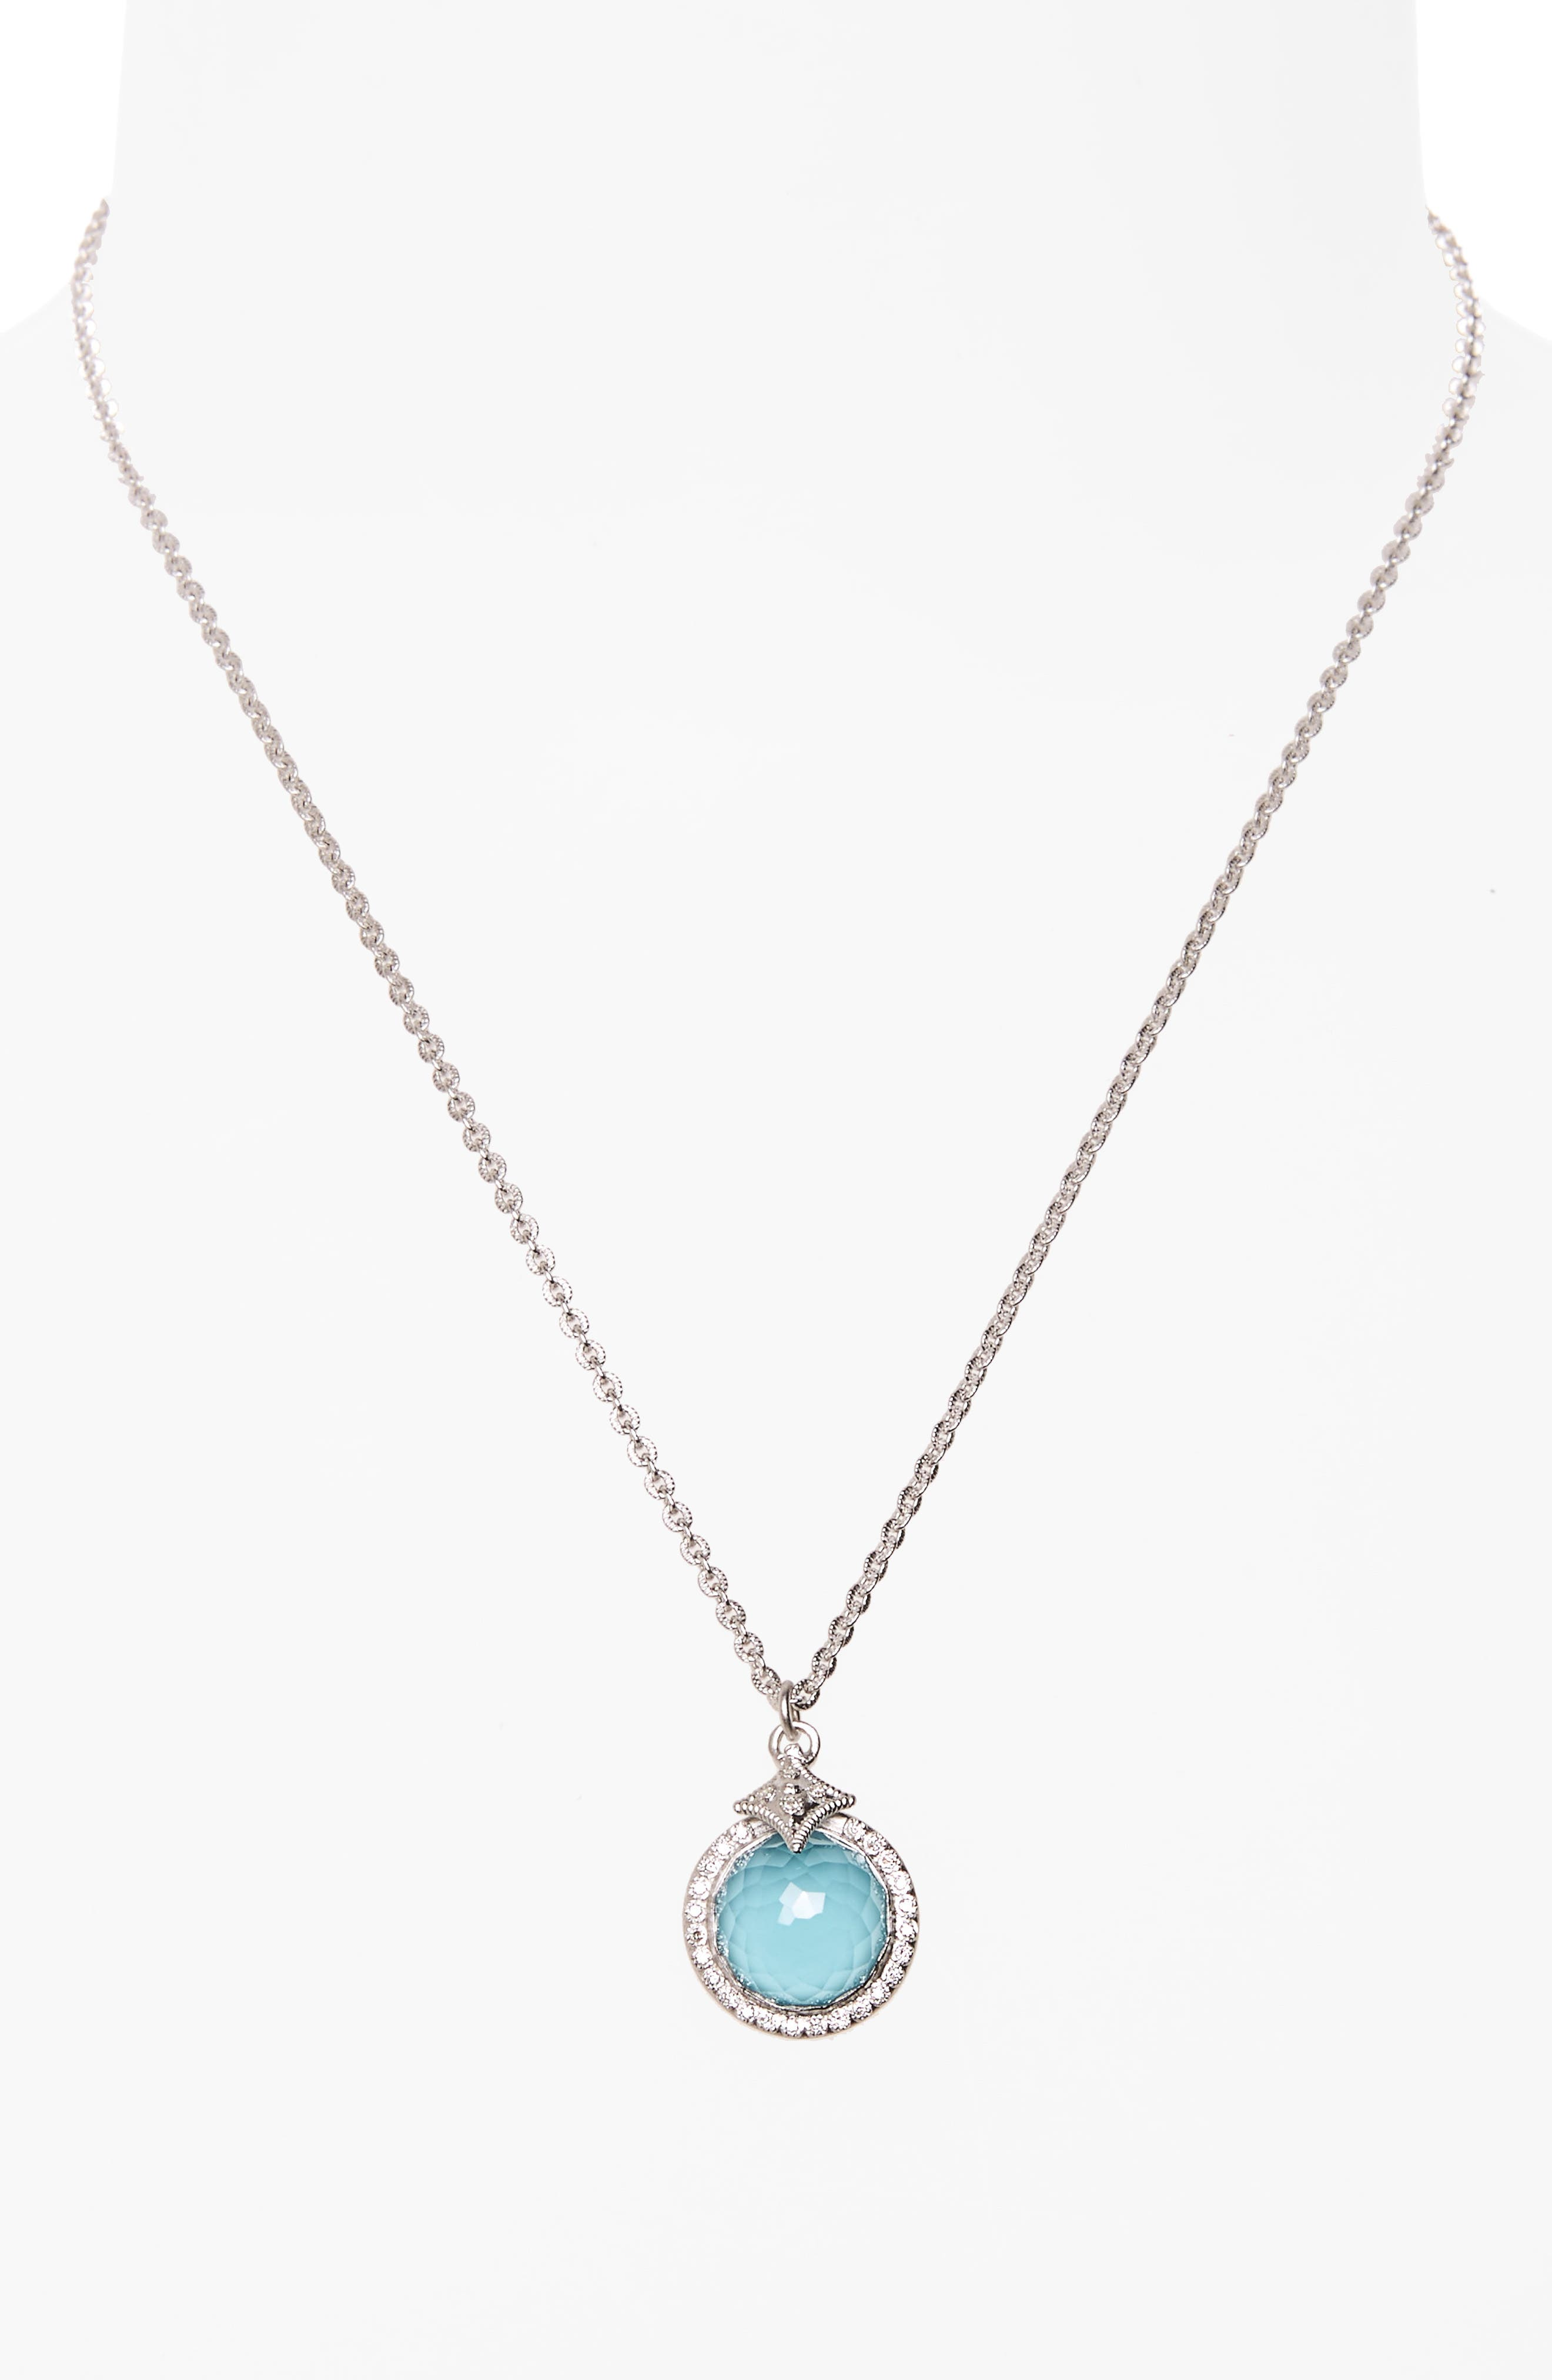 New World Turquoise Pendant Necklace,                             Alternate thumbnail 2, color,                             Silver